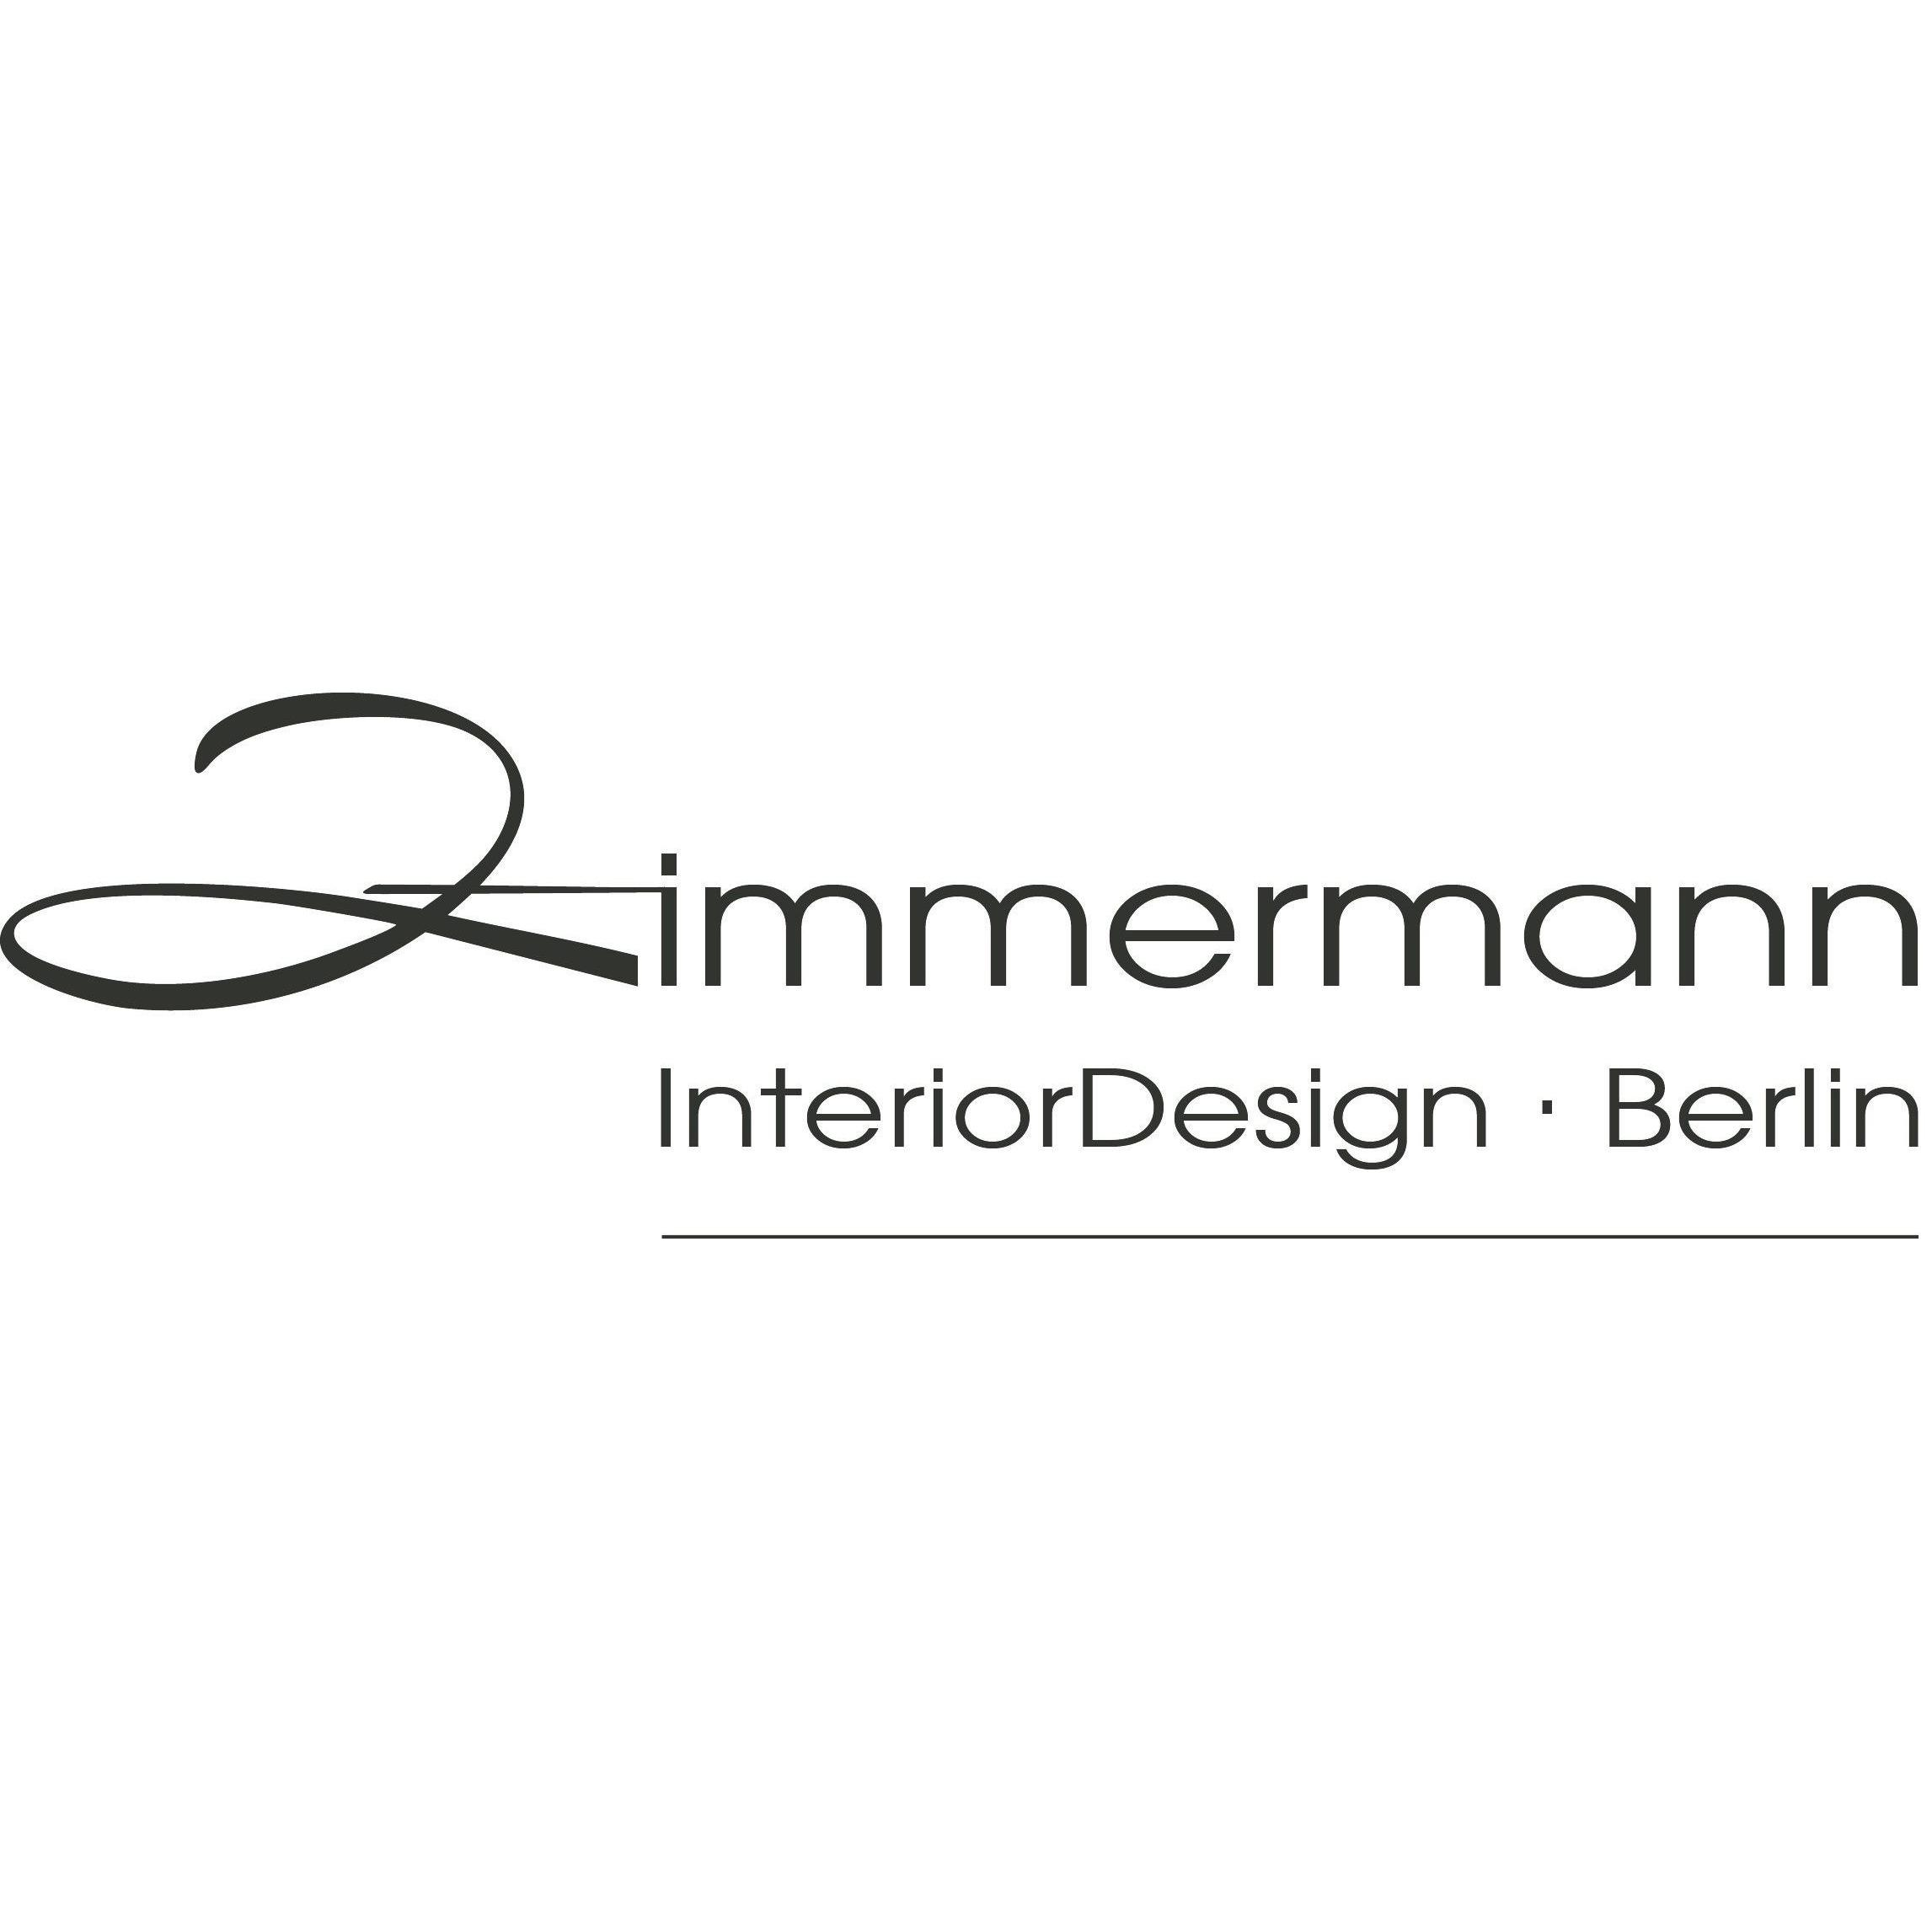 Bild zu Zimmermann InteriorDesign in Berlin